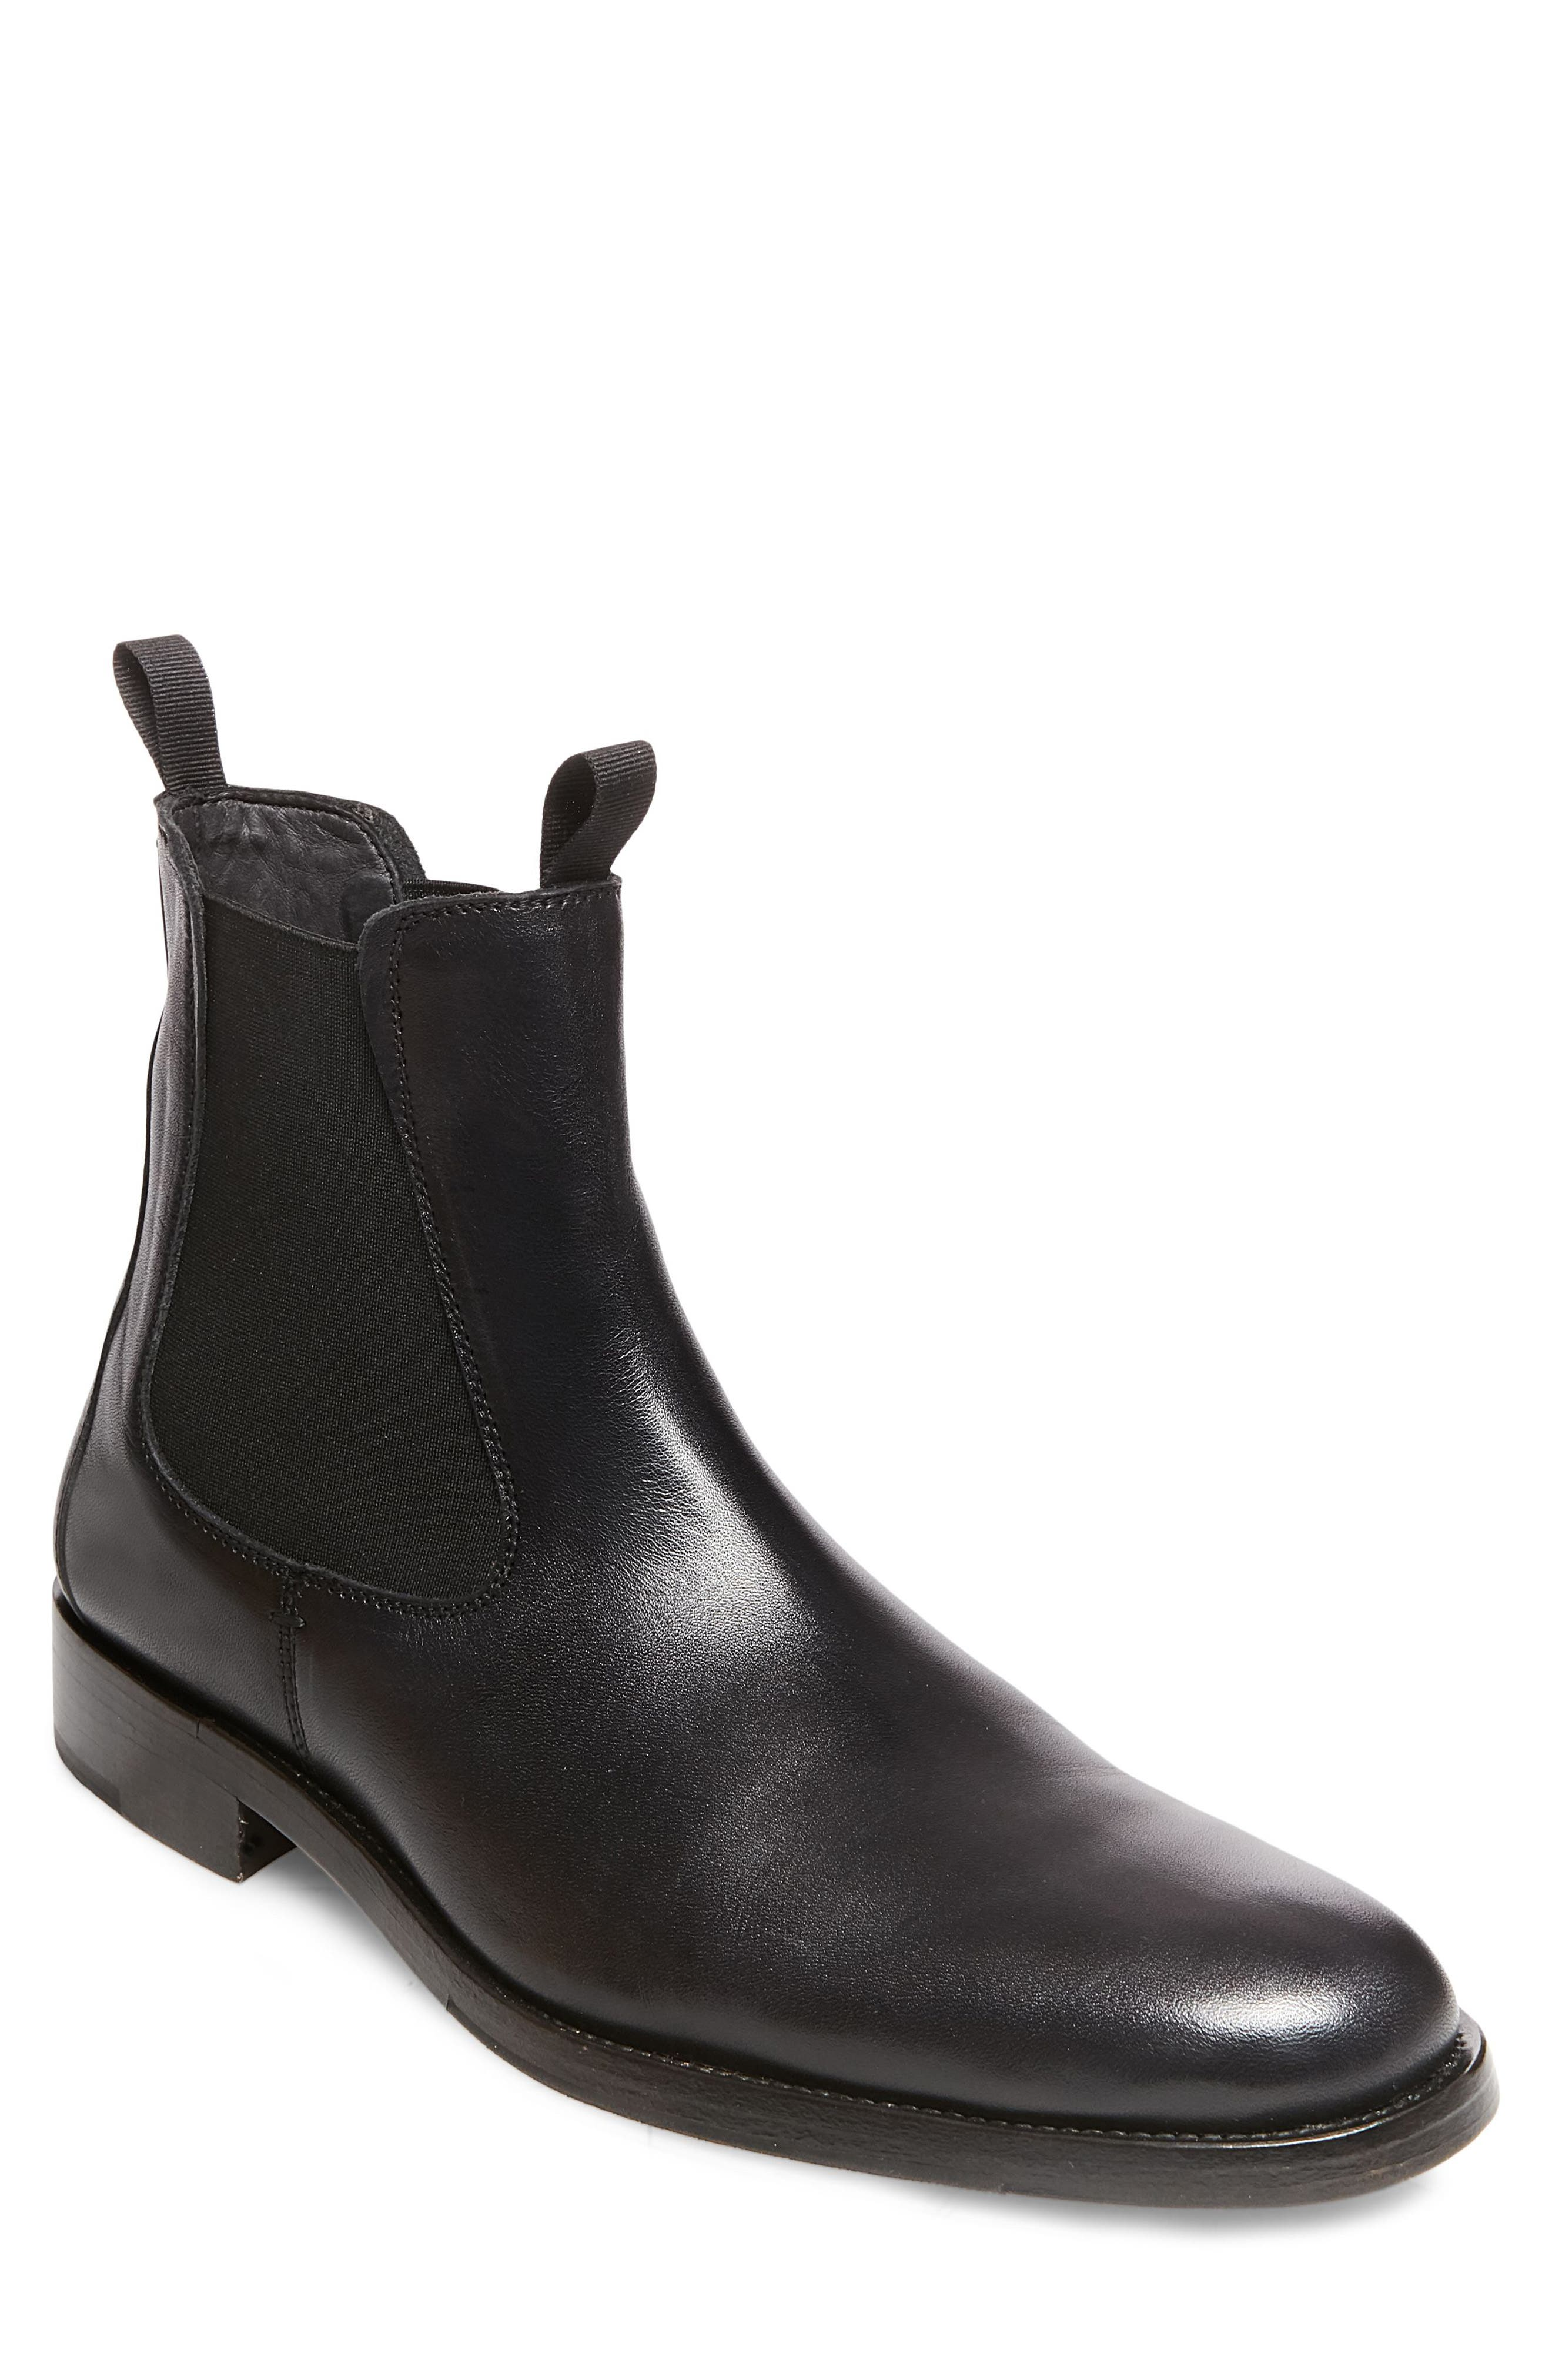 x GQ Nick Chelsea Boot,                         Main,                         color, Black Leather